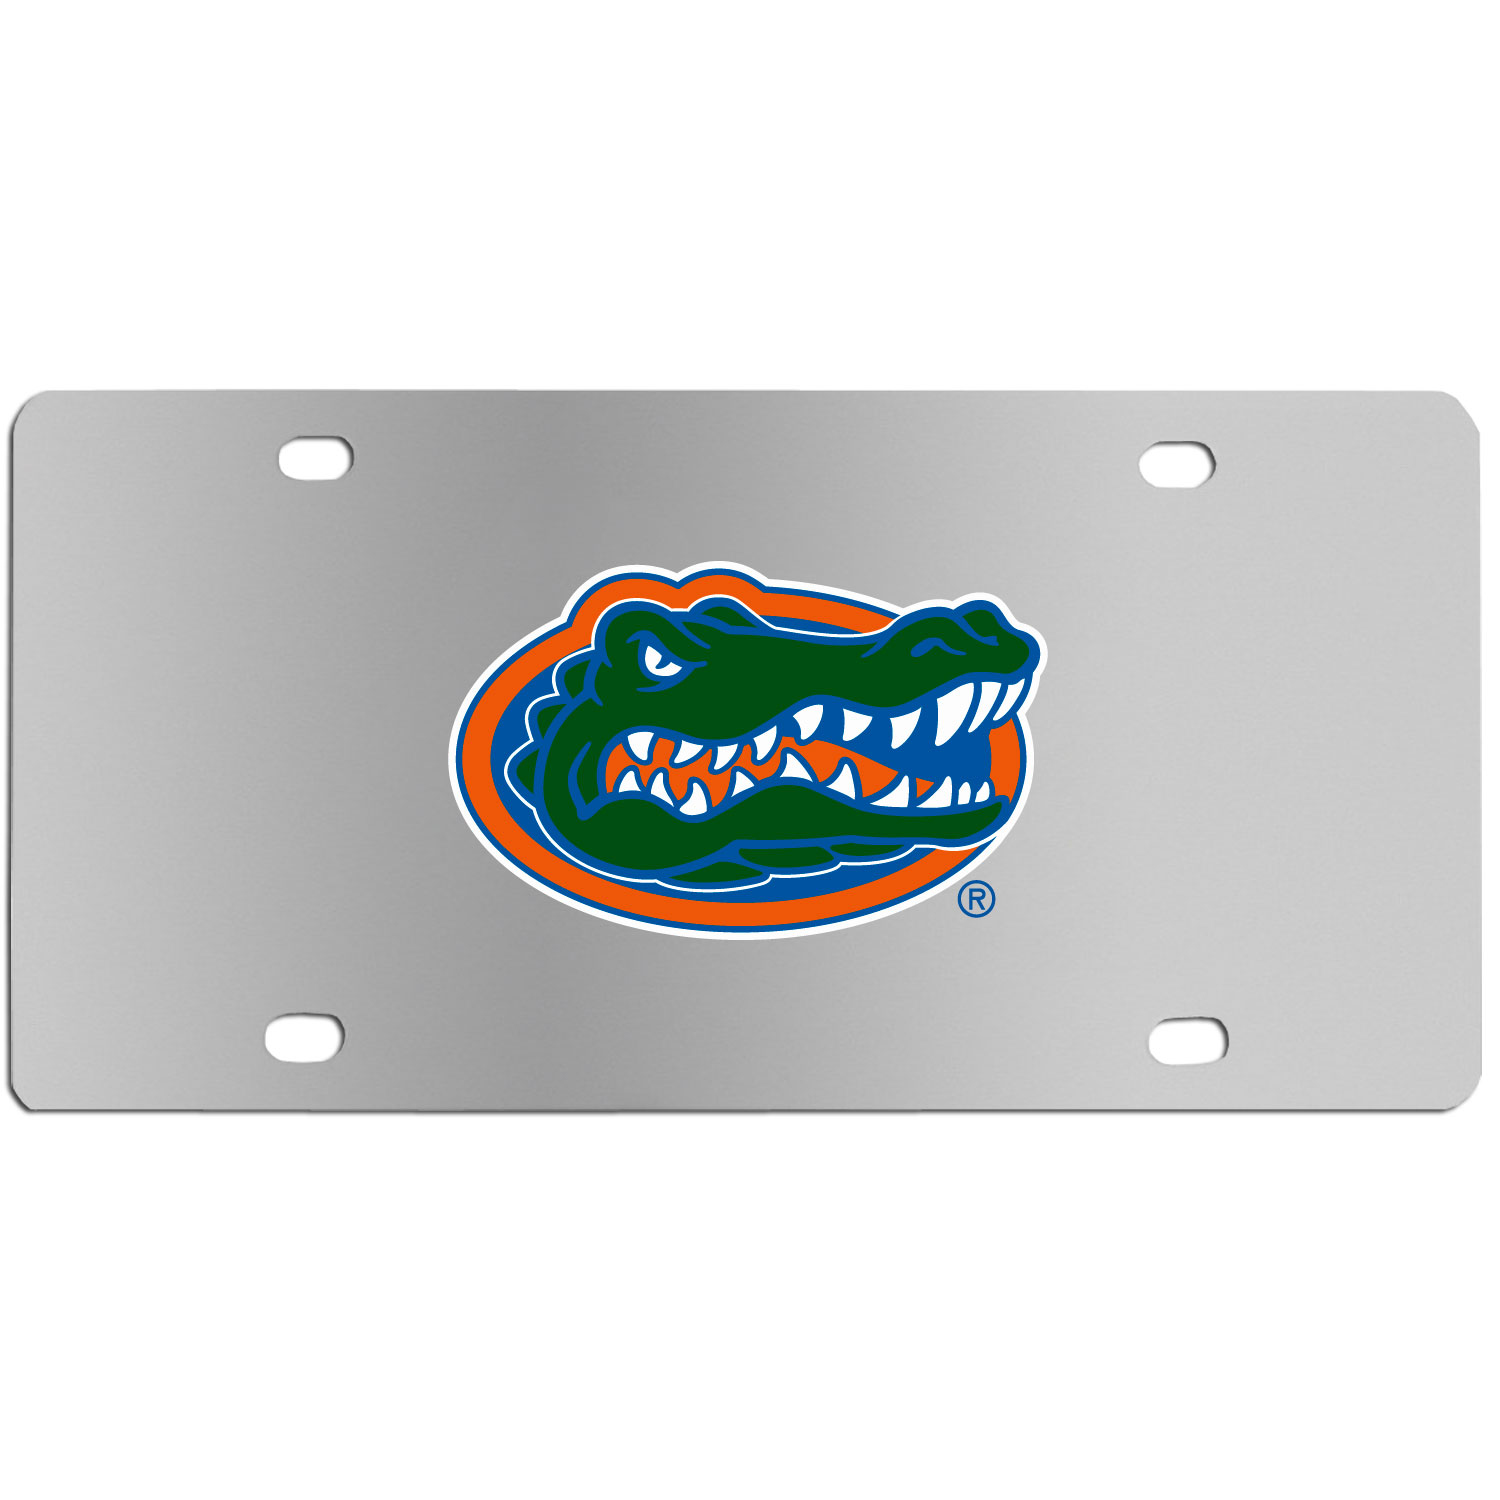 Florida Gators Steel License Plate Wall Plaque - This high-quality stainless steel license plate features a detailed team logo on a the polished surface. The attractive plate is perfect for wall mounting in your home or office to become the perfect die-hard Florida Gators fan decor.